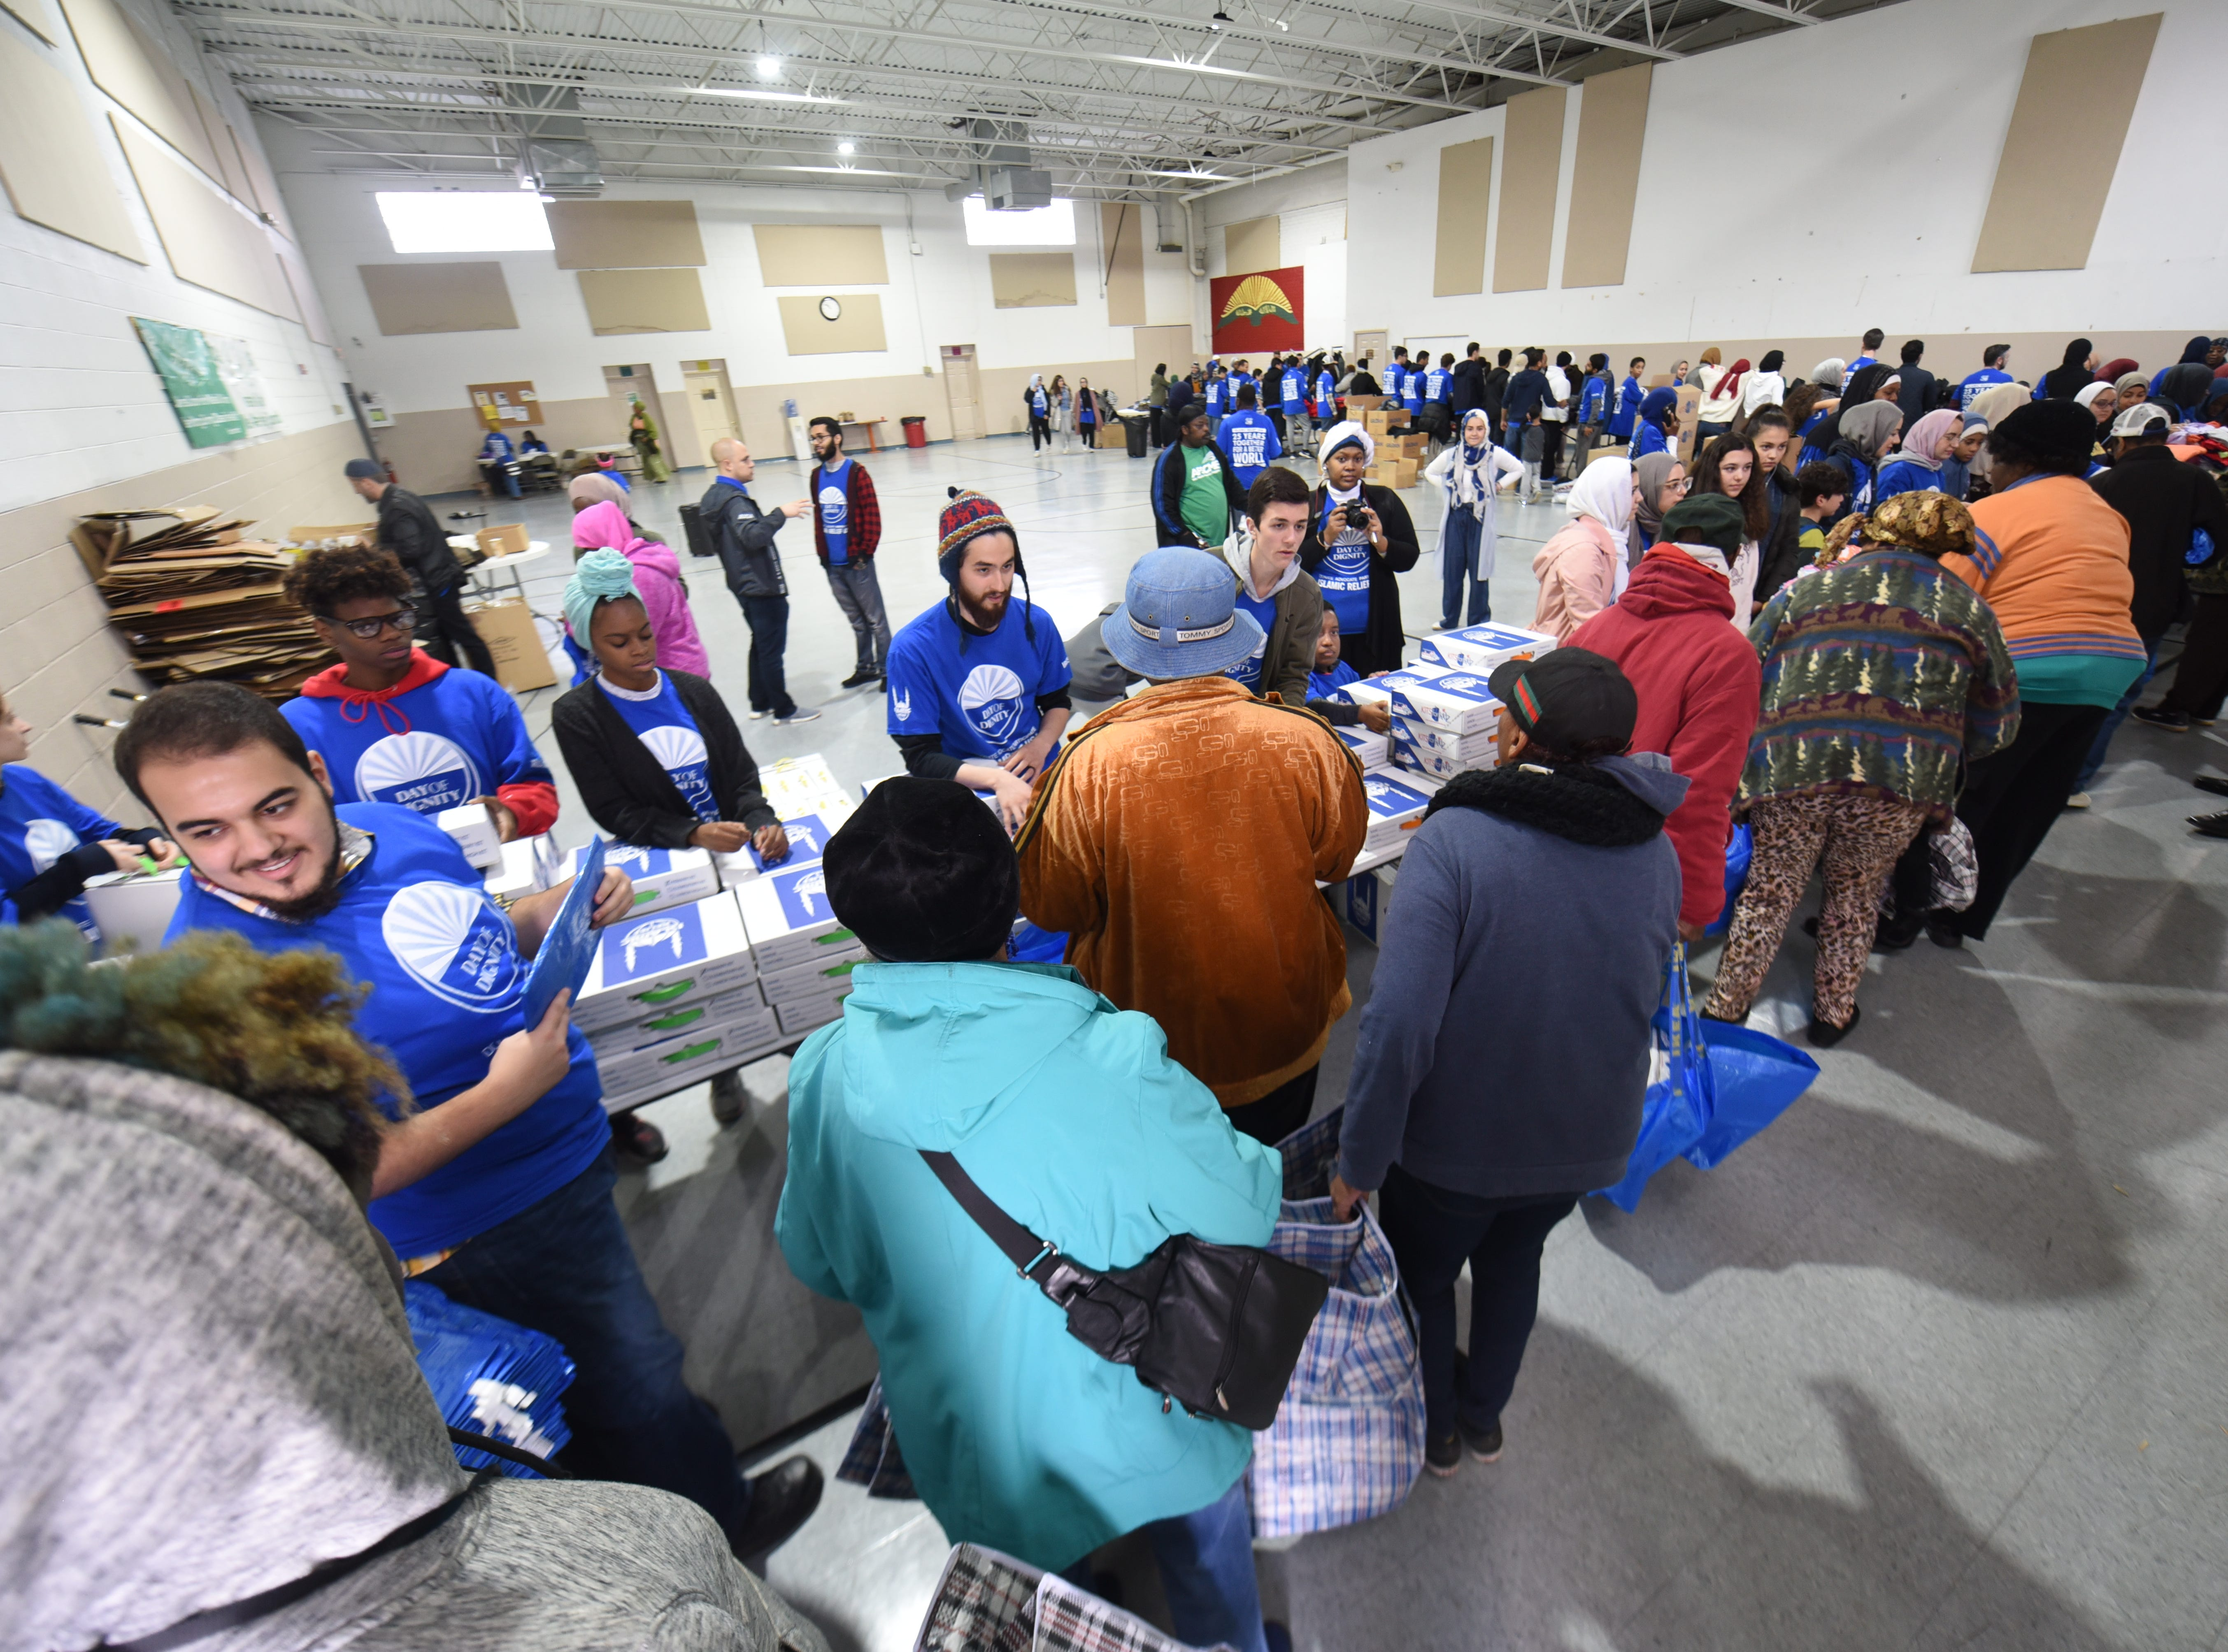 Participants wait in line during the  Islamic Relief USA's Day of Dignity campaign held at the Muslim Center Mosque and Community Center in Detroit.